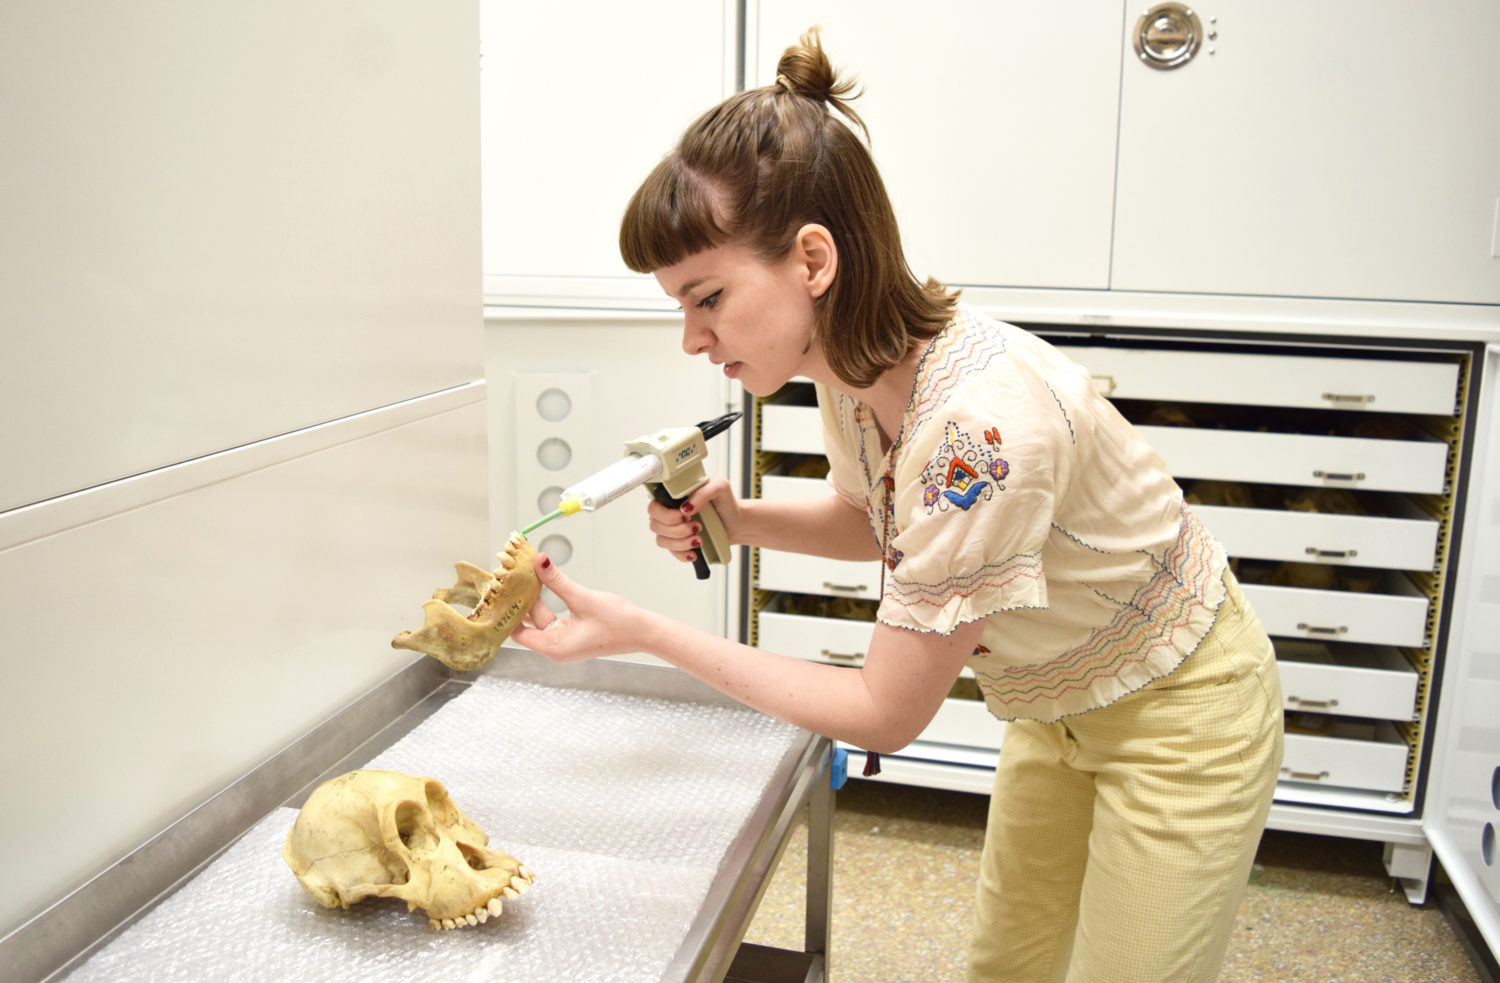 Kathryn McGrath collecting dental impressions of orangutan teeth at the Smithsonian's National Museum of Natural History